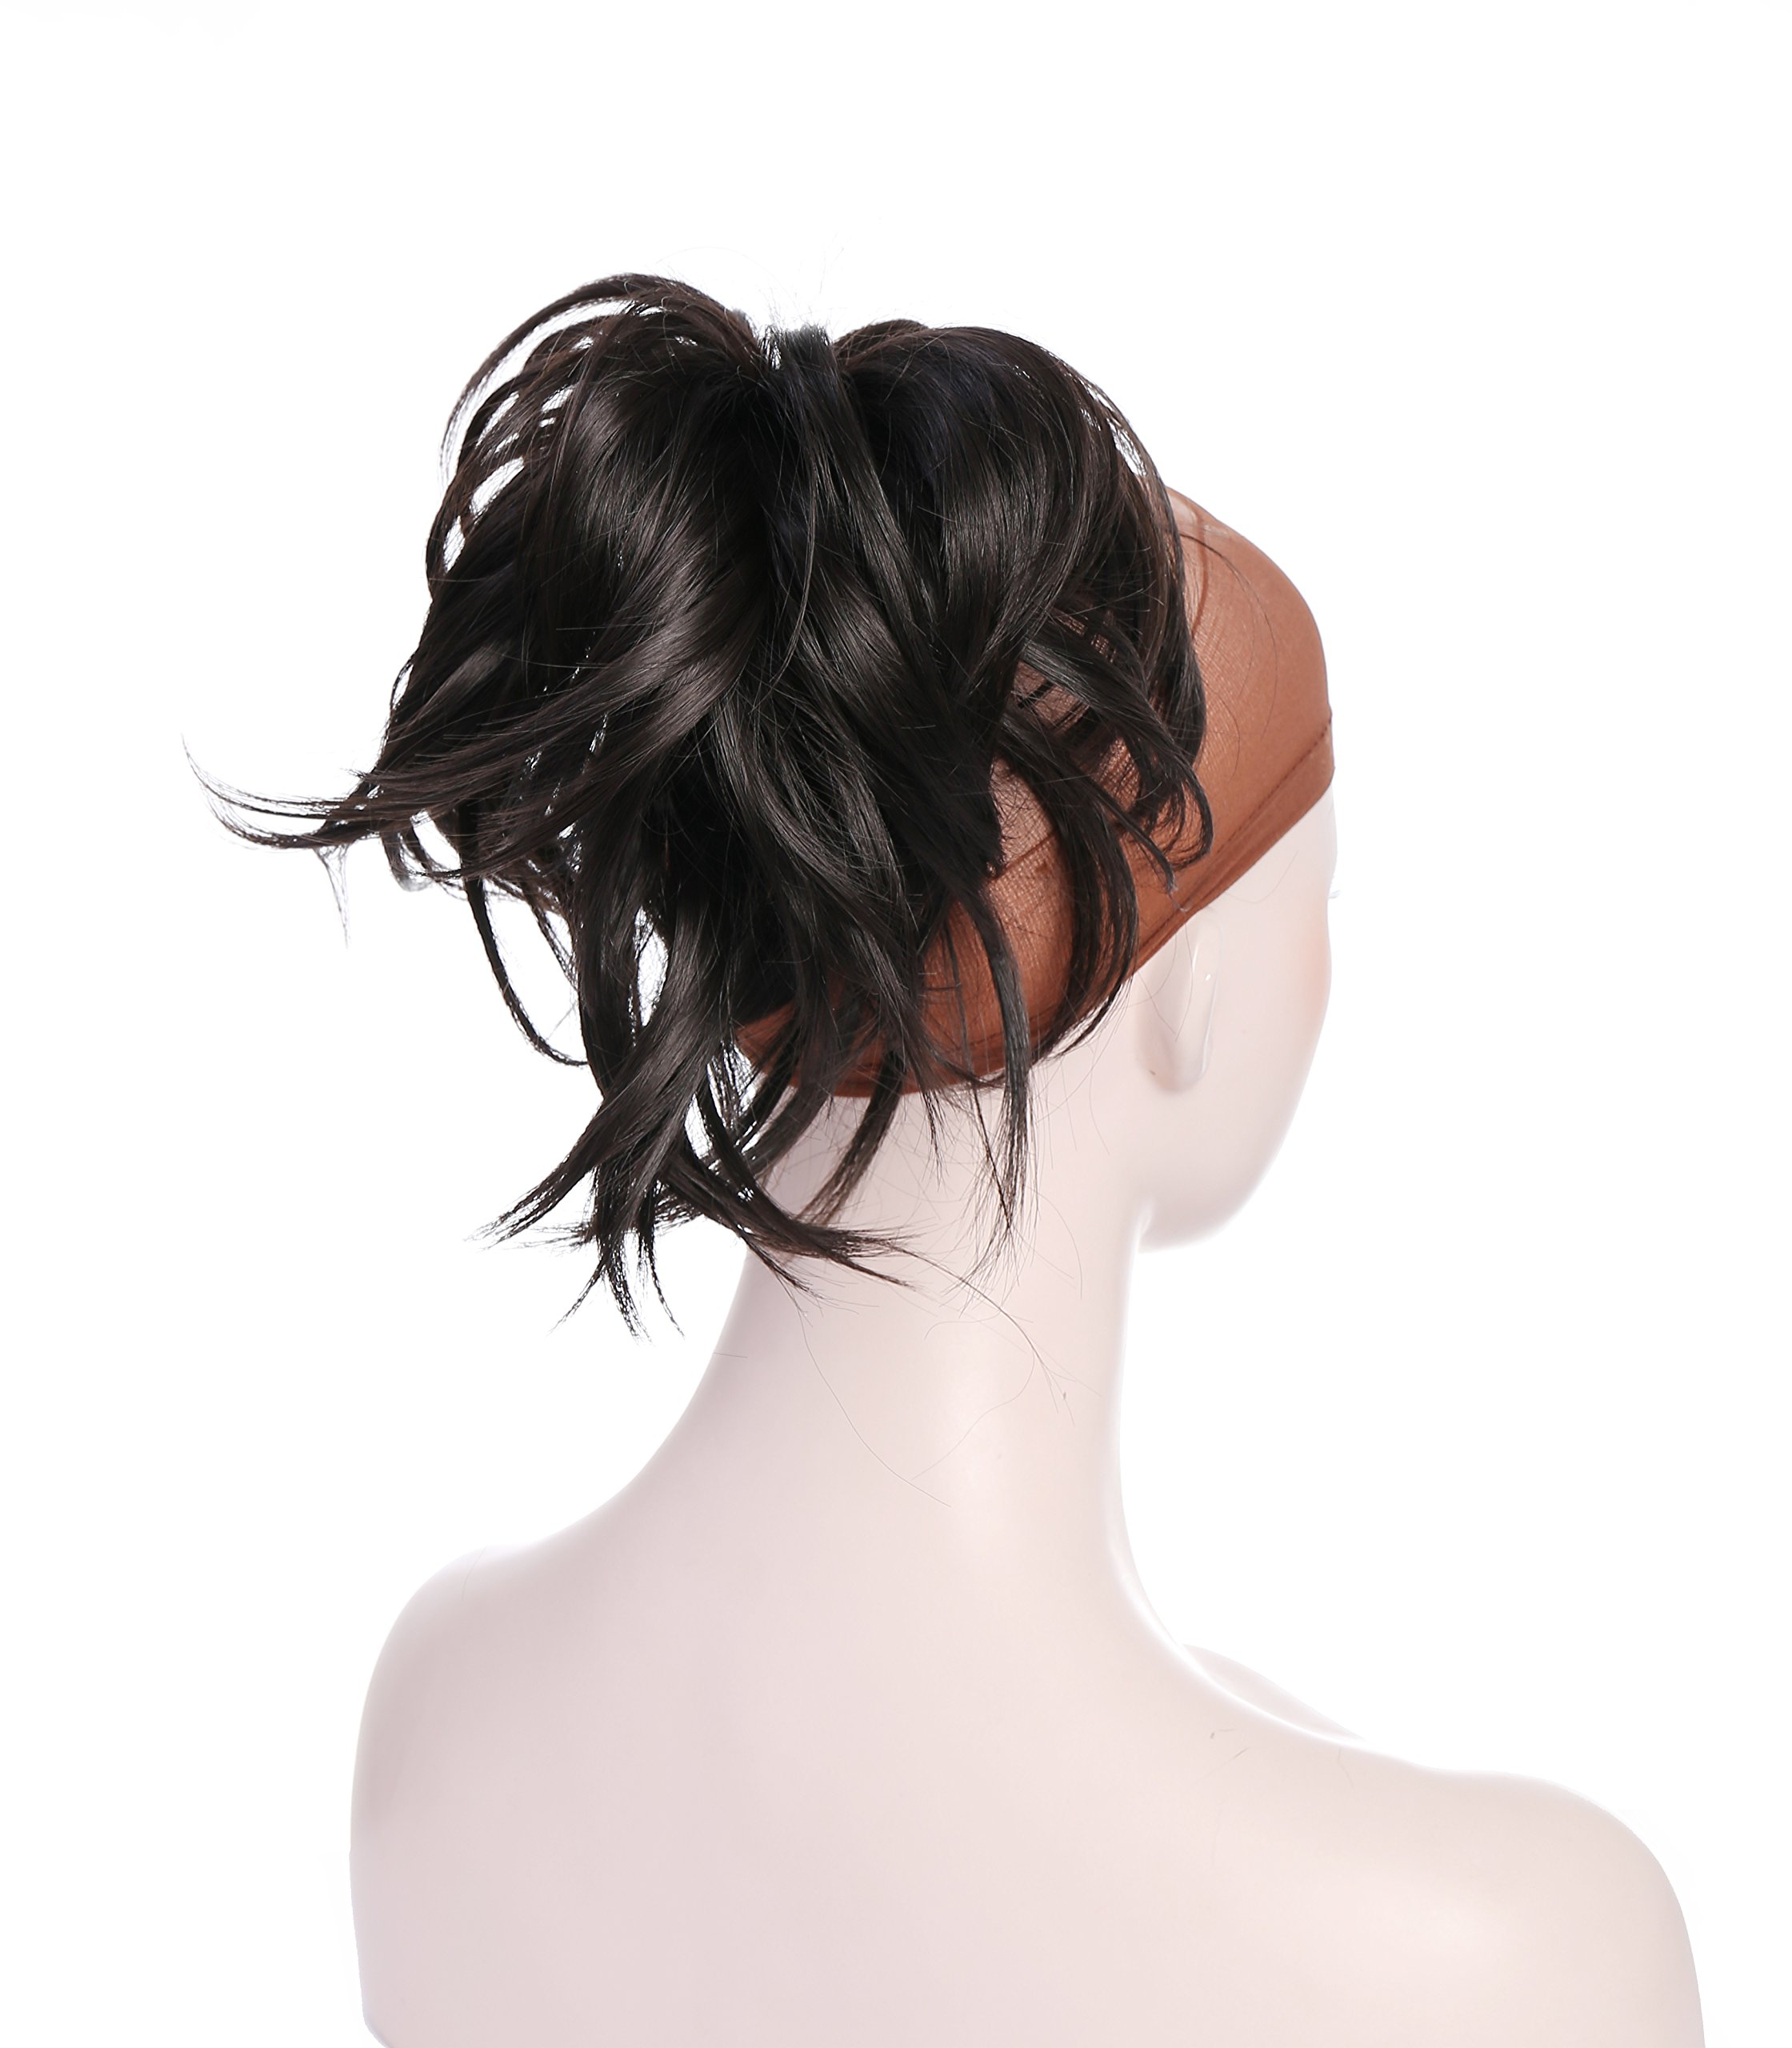 Onedor 12 inch Premium Synthetic Adjustable & Customizable Updo Style Ponytail Hair Extension with Clip on Claw Attachment (4# Dark Brown)